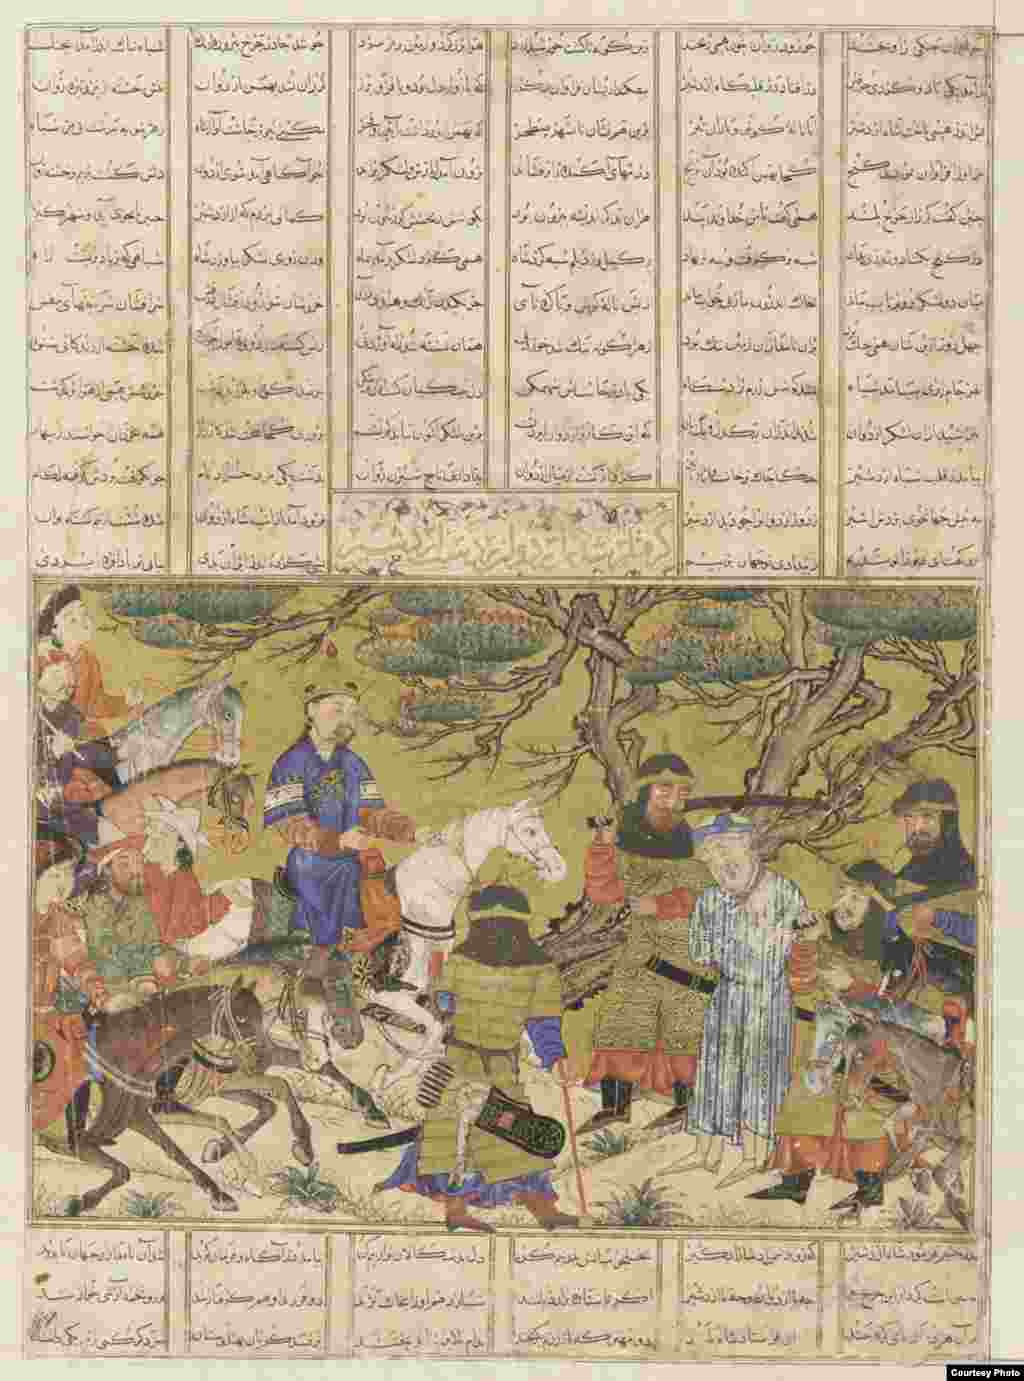 """Magnifying glasses are provided to visitors to help them appreciate the extraordinarily fine detail of the miniature paintings. """"Ardashar Captures Ardavan,"""" Tabriz, Iran, circa 1330-1336, from """"The Shahnameh"""" (Book of Kings) by Firdawsi Photos courtesy of the Smithsonian Institute, Washington, D.C."""